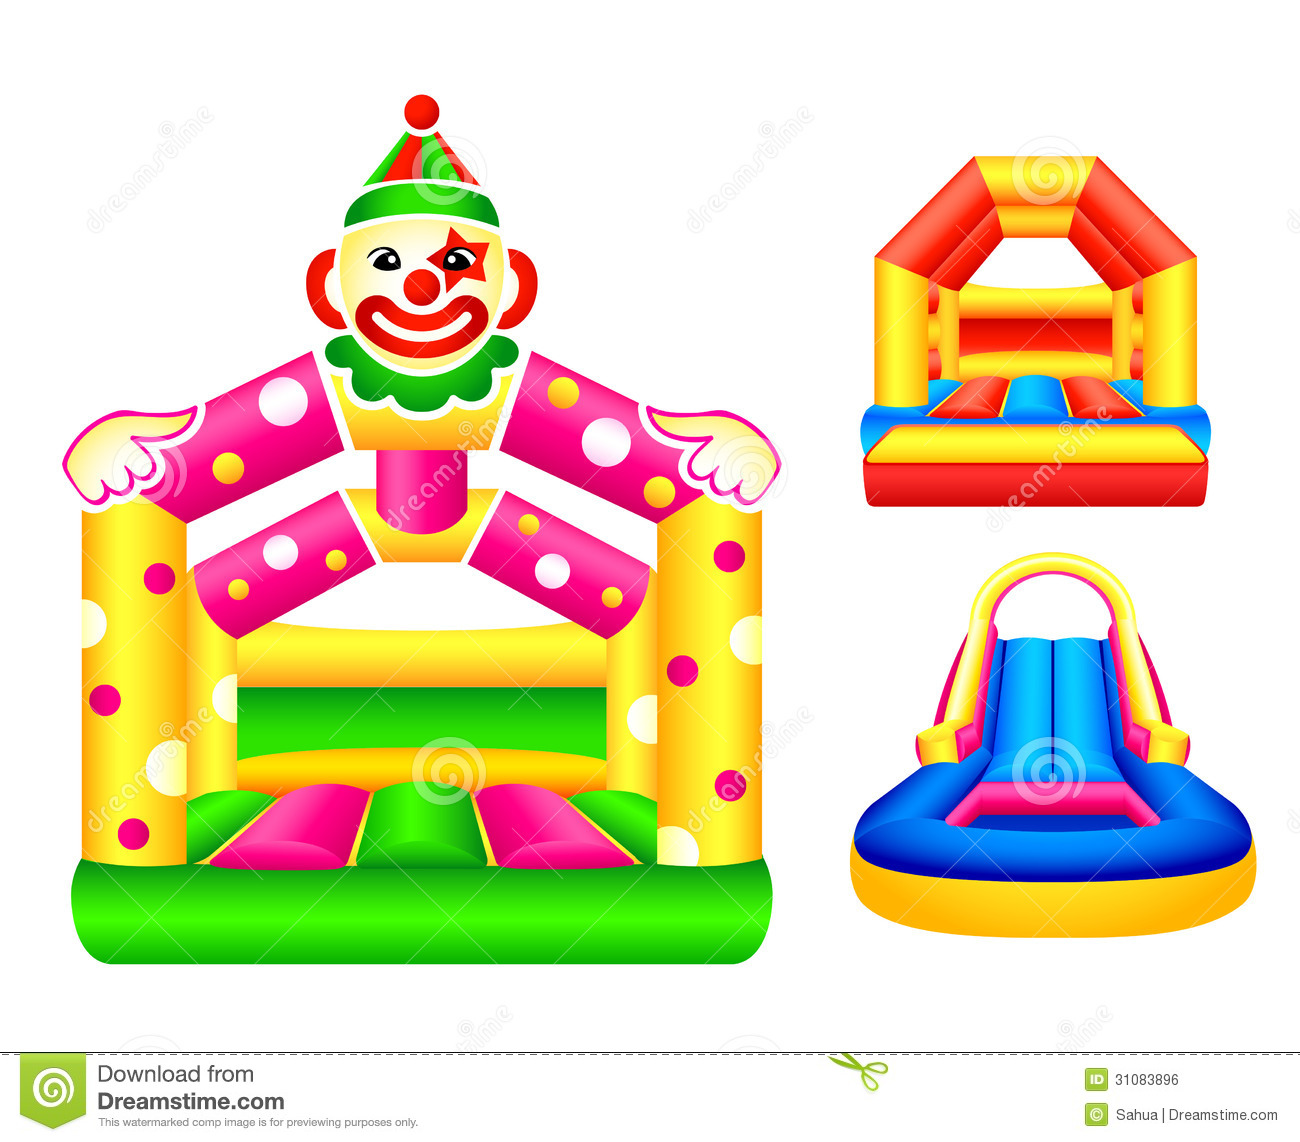 free bounce house clipart - photo #31